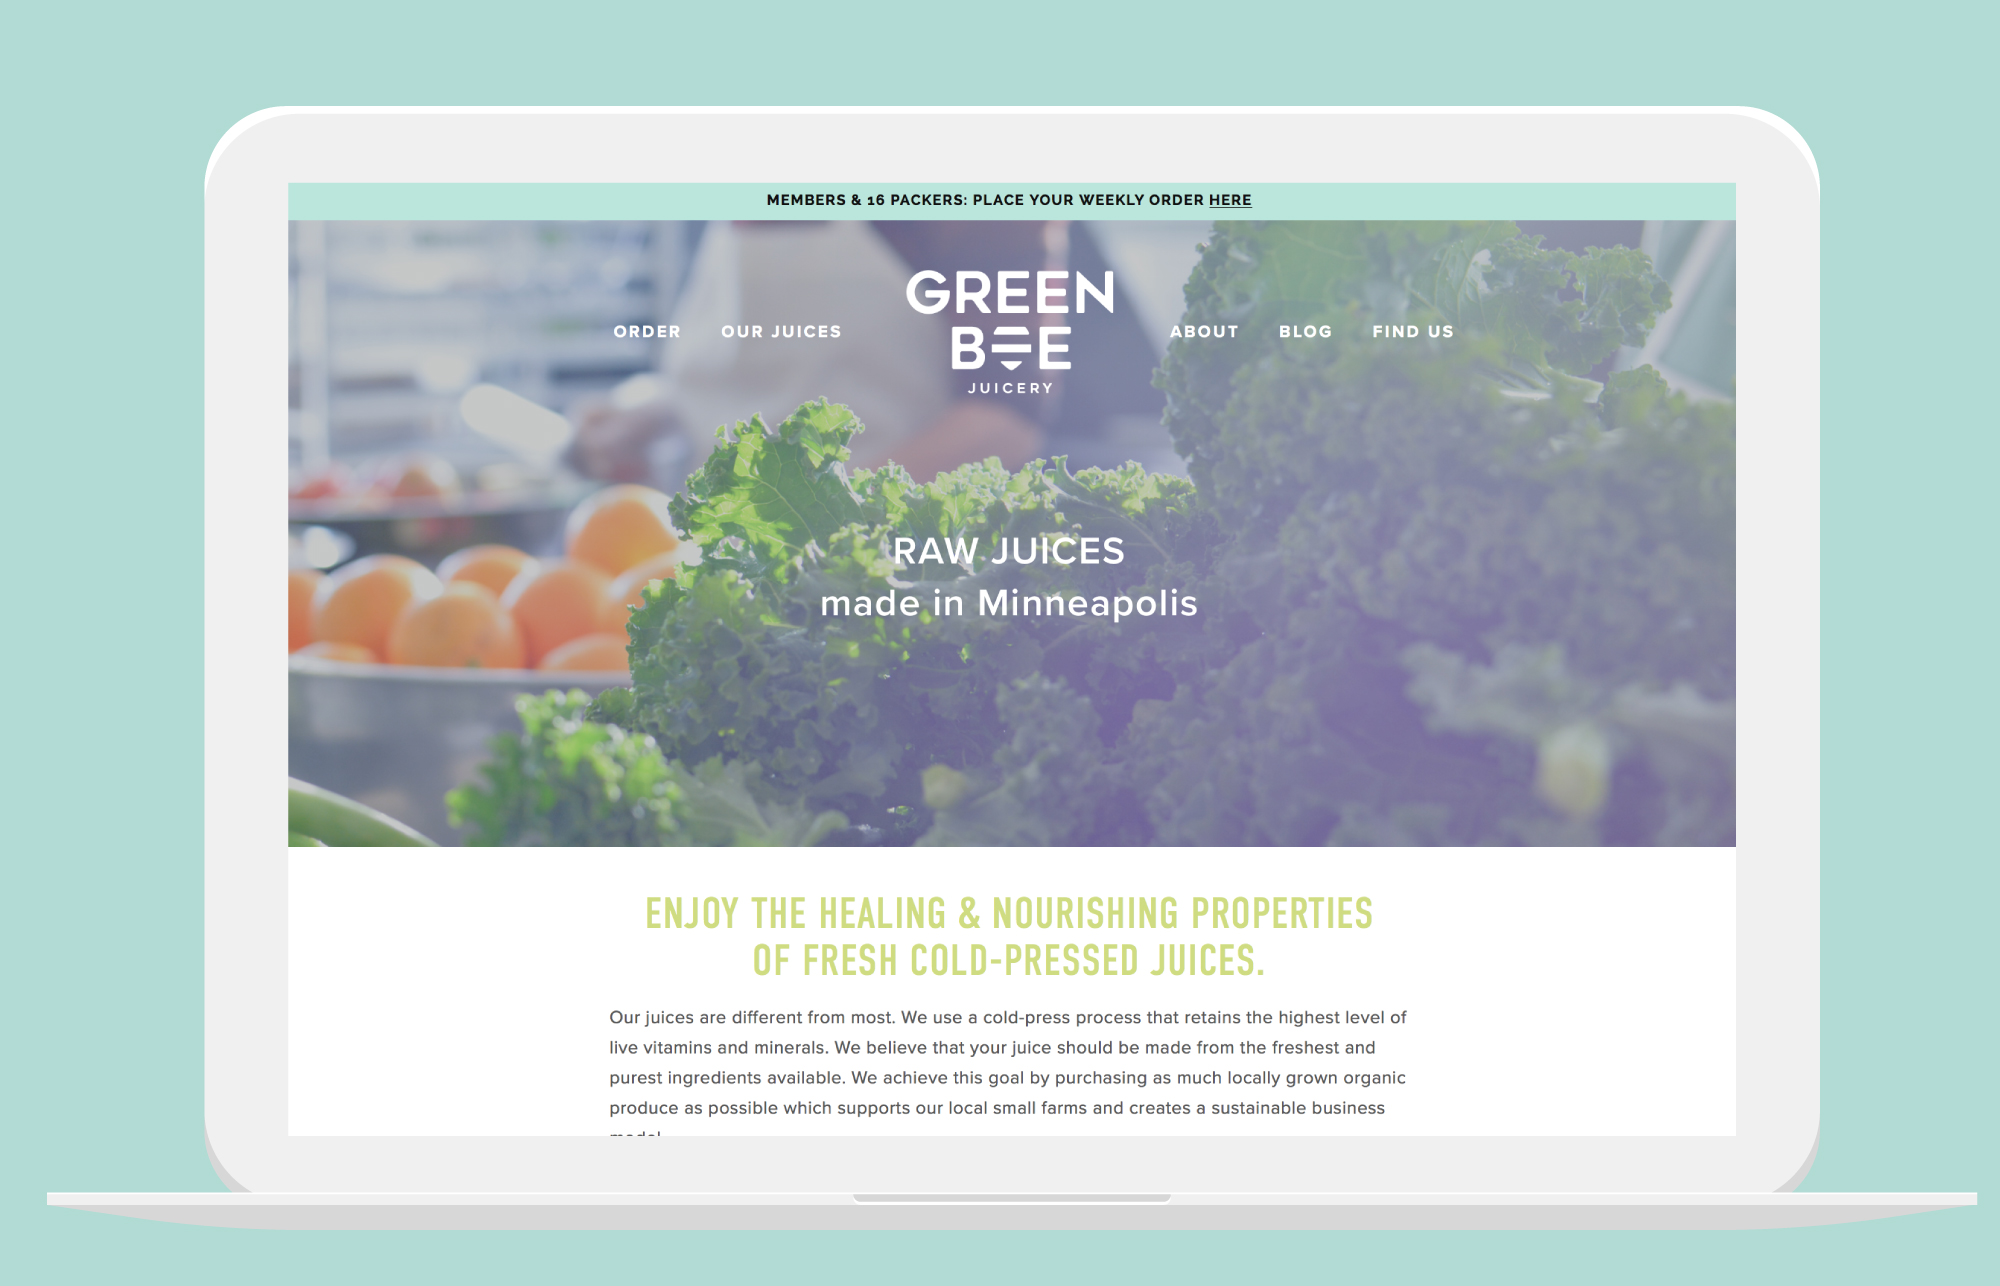 Green Bee Juicery - Website design by Kayd Roy